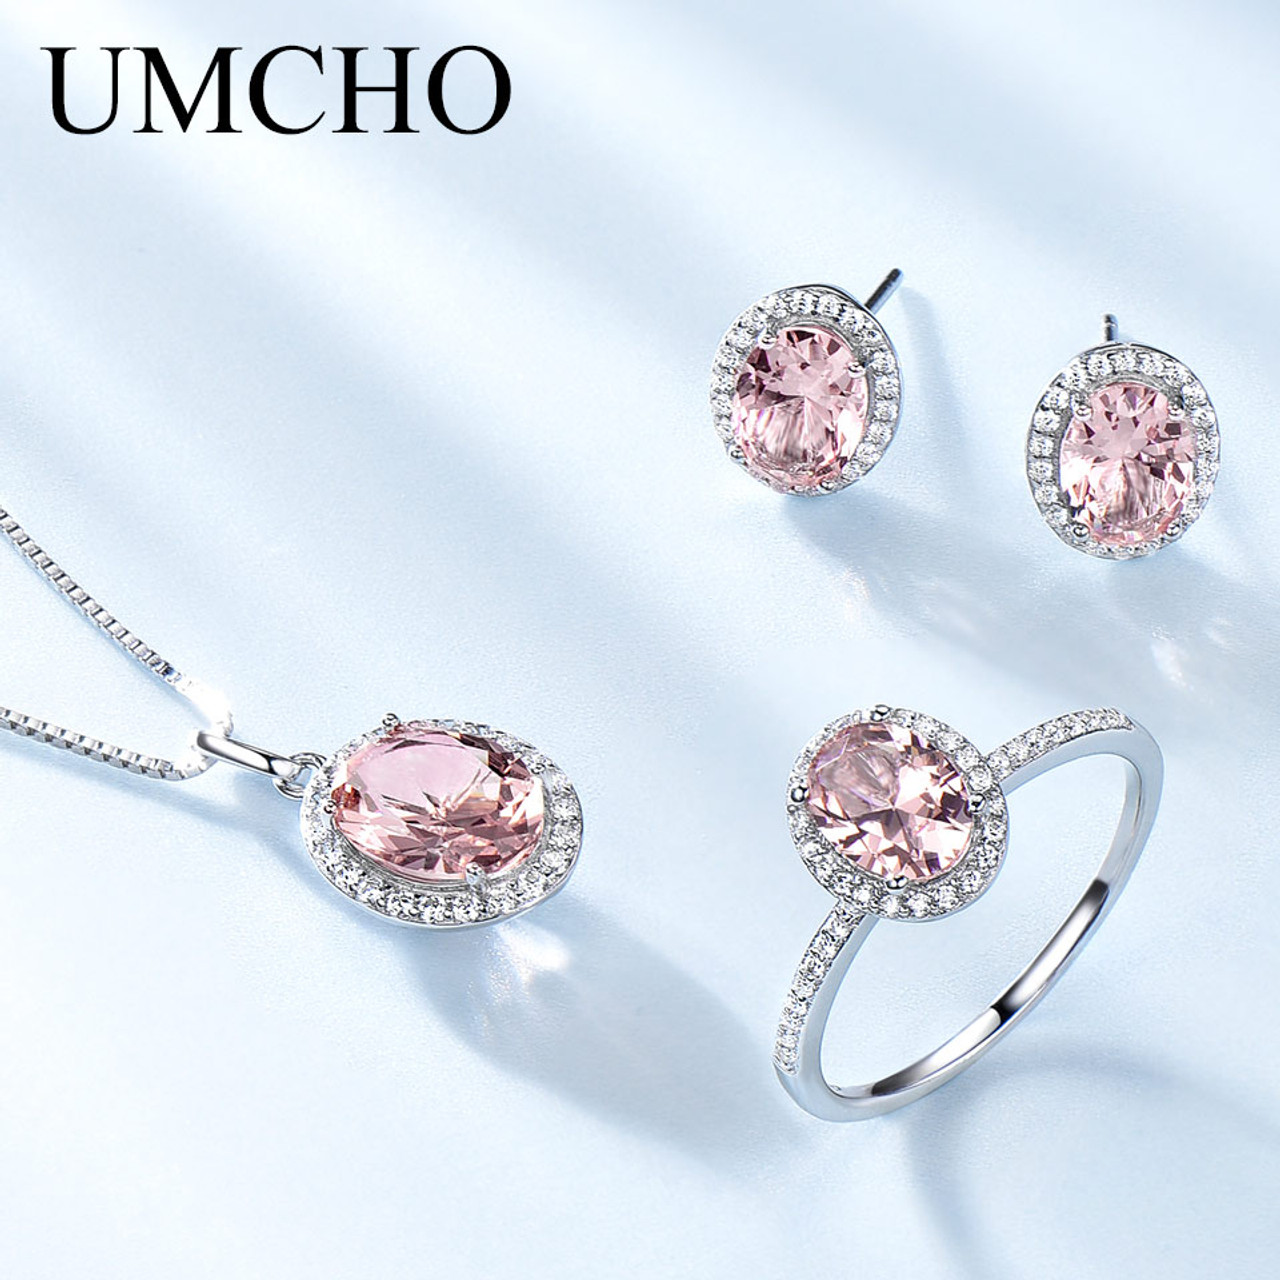 a6adf578f UMCHO Created Pink Sapphire Jewelry Sets Elegant 925 Sterling Silver  Jewelry Necklaces Rings Earrings For Women ...